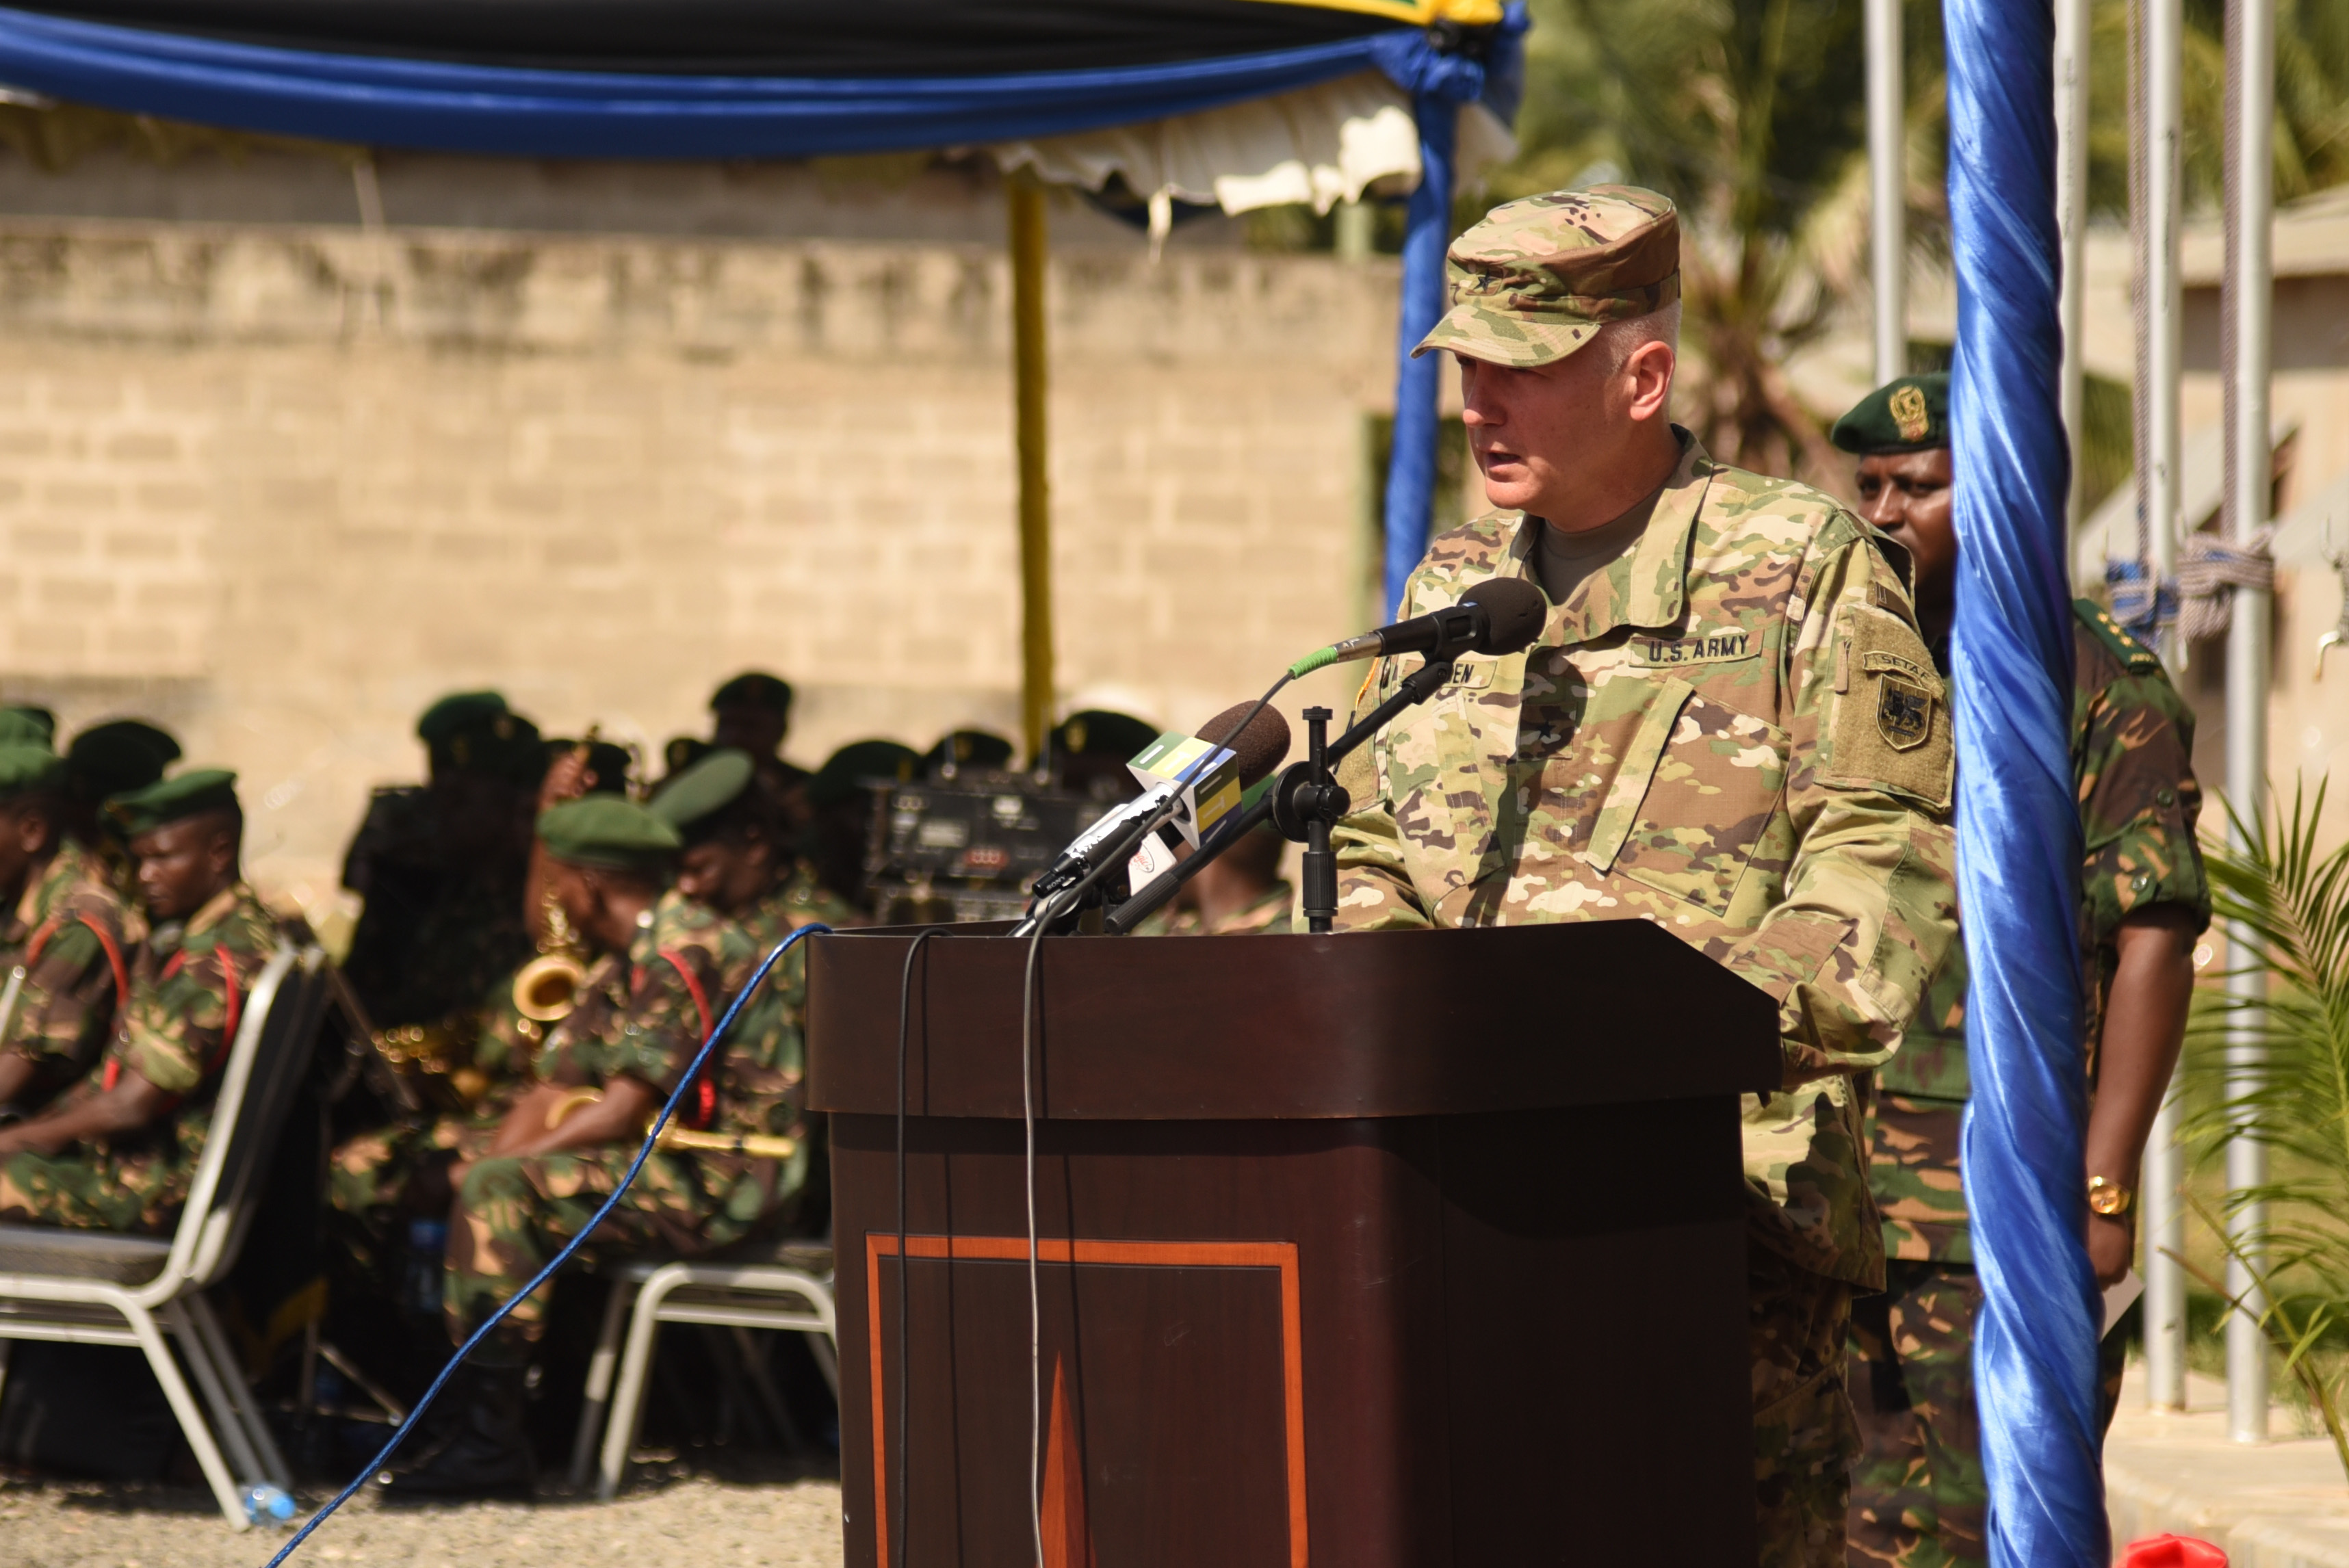 DAR ES SALAAM, Tanzania – U.S. Army Brig. Gen. Jon Jensen, U.S. Army Africa deputy commanding general and co-exercise director, welcomes participants to the Eastern Accord 2016 command post exercise during the opening ceremony at the Tanzanian Peacekeeping Training Centre on July, 11, 2016, Dar es Salaam, Tanzania. EA16 is an annual, combined, joint military exercise that brings together partner nations to practice and demonstrate proficiency in conducting peacekeeping operations. (U.S. Air Force photo by Staff Sgt. Tiffany DeNault/Released)